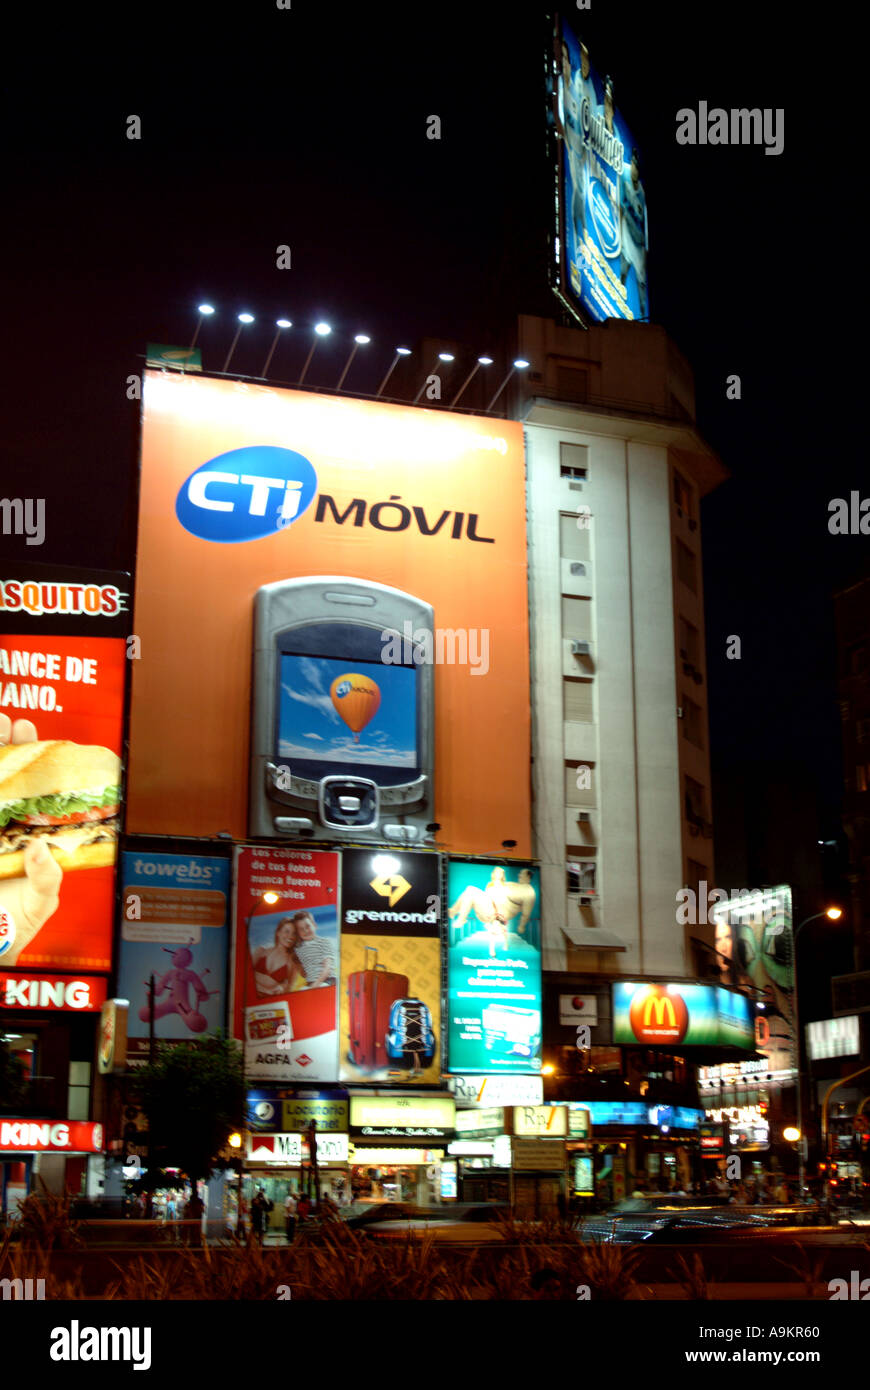 Argentina Buenos Aires CTI Movil mobile phone hoarding by the Plaza de la Republica at night - Stock Image